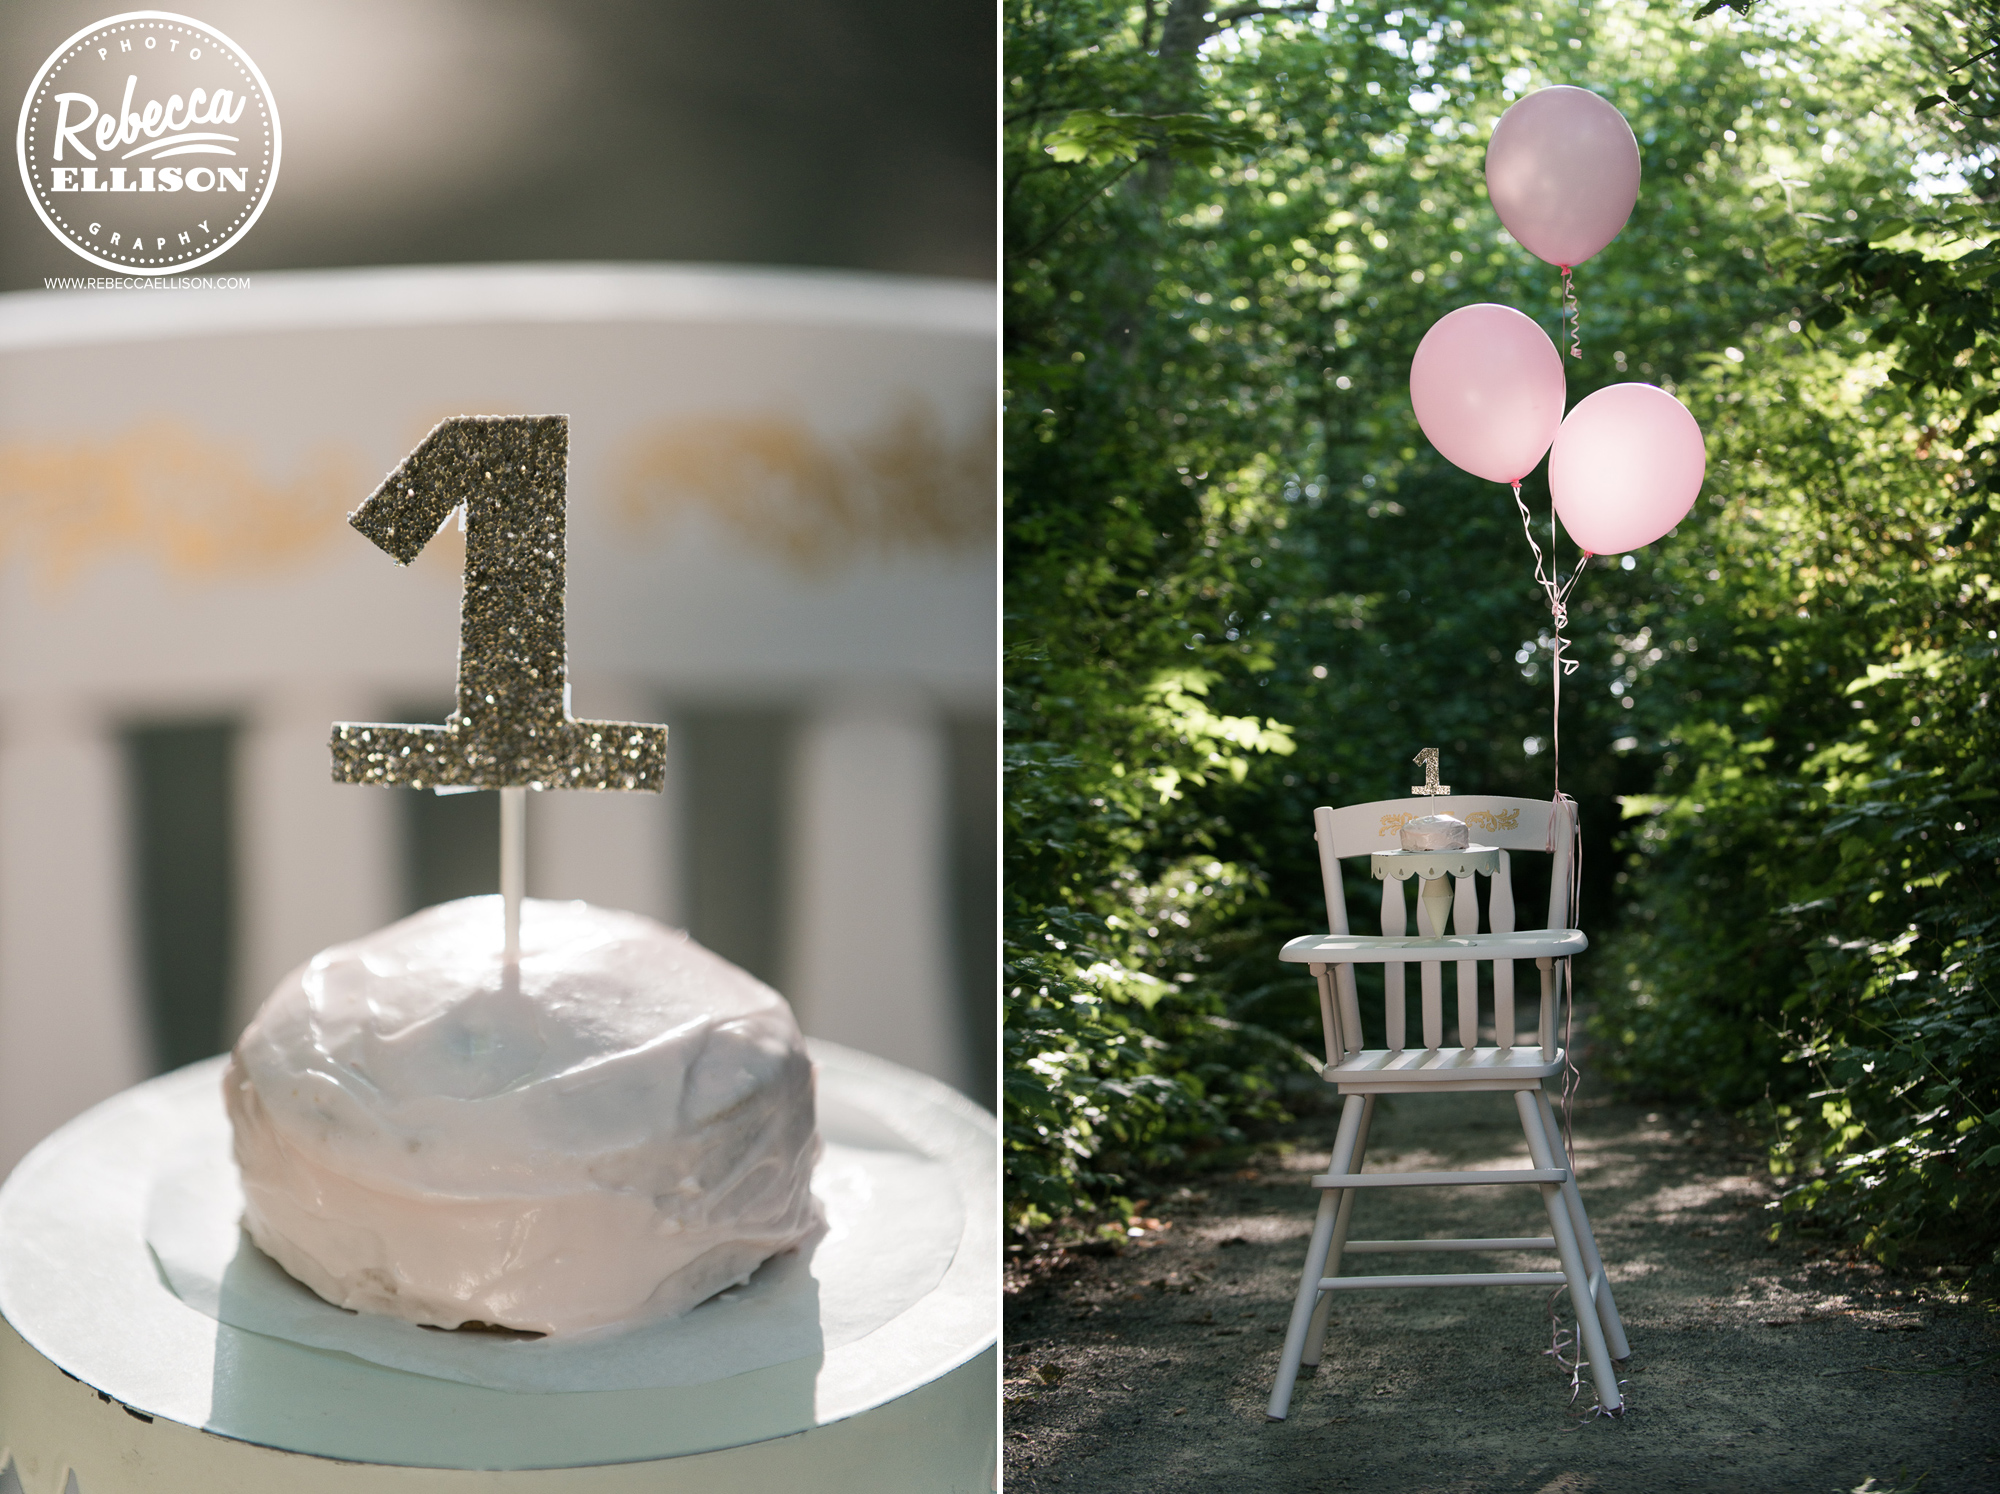 First Birthday cake and a high chair with pink balloons photographed by Rebecca Ellison Photography